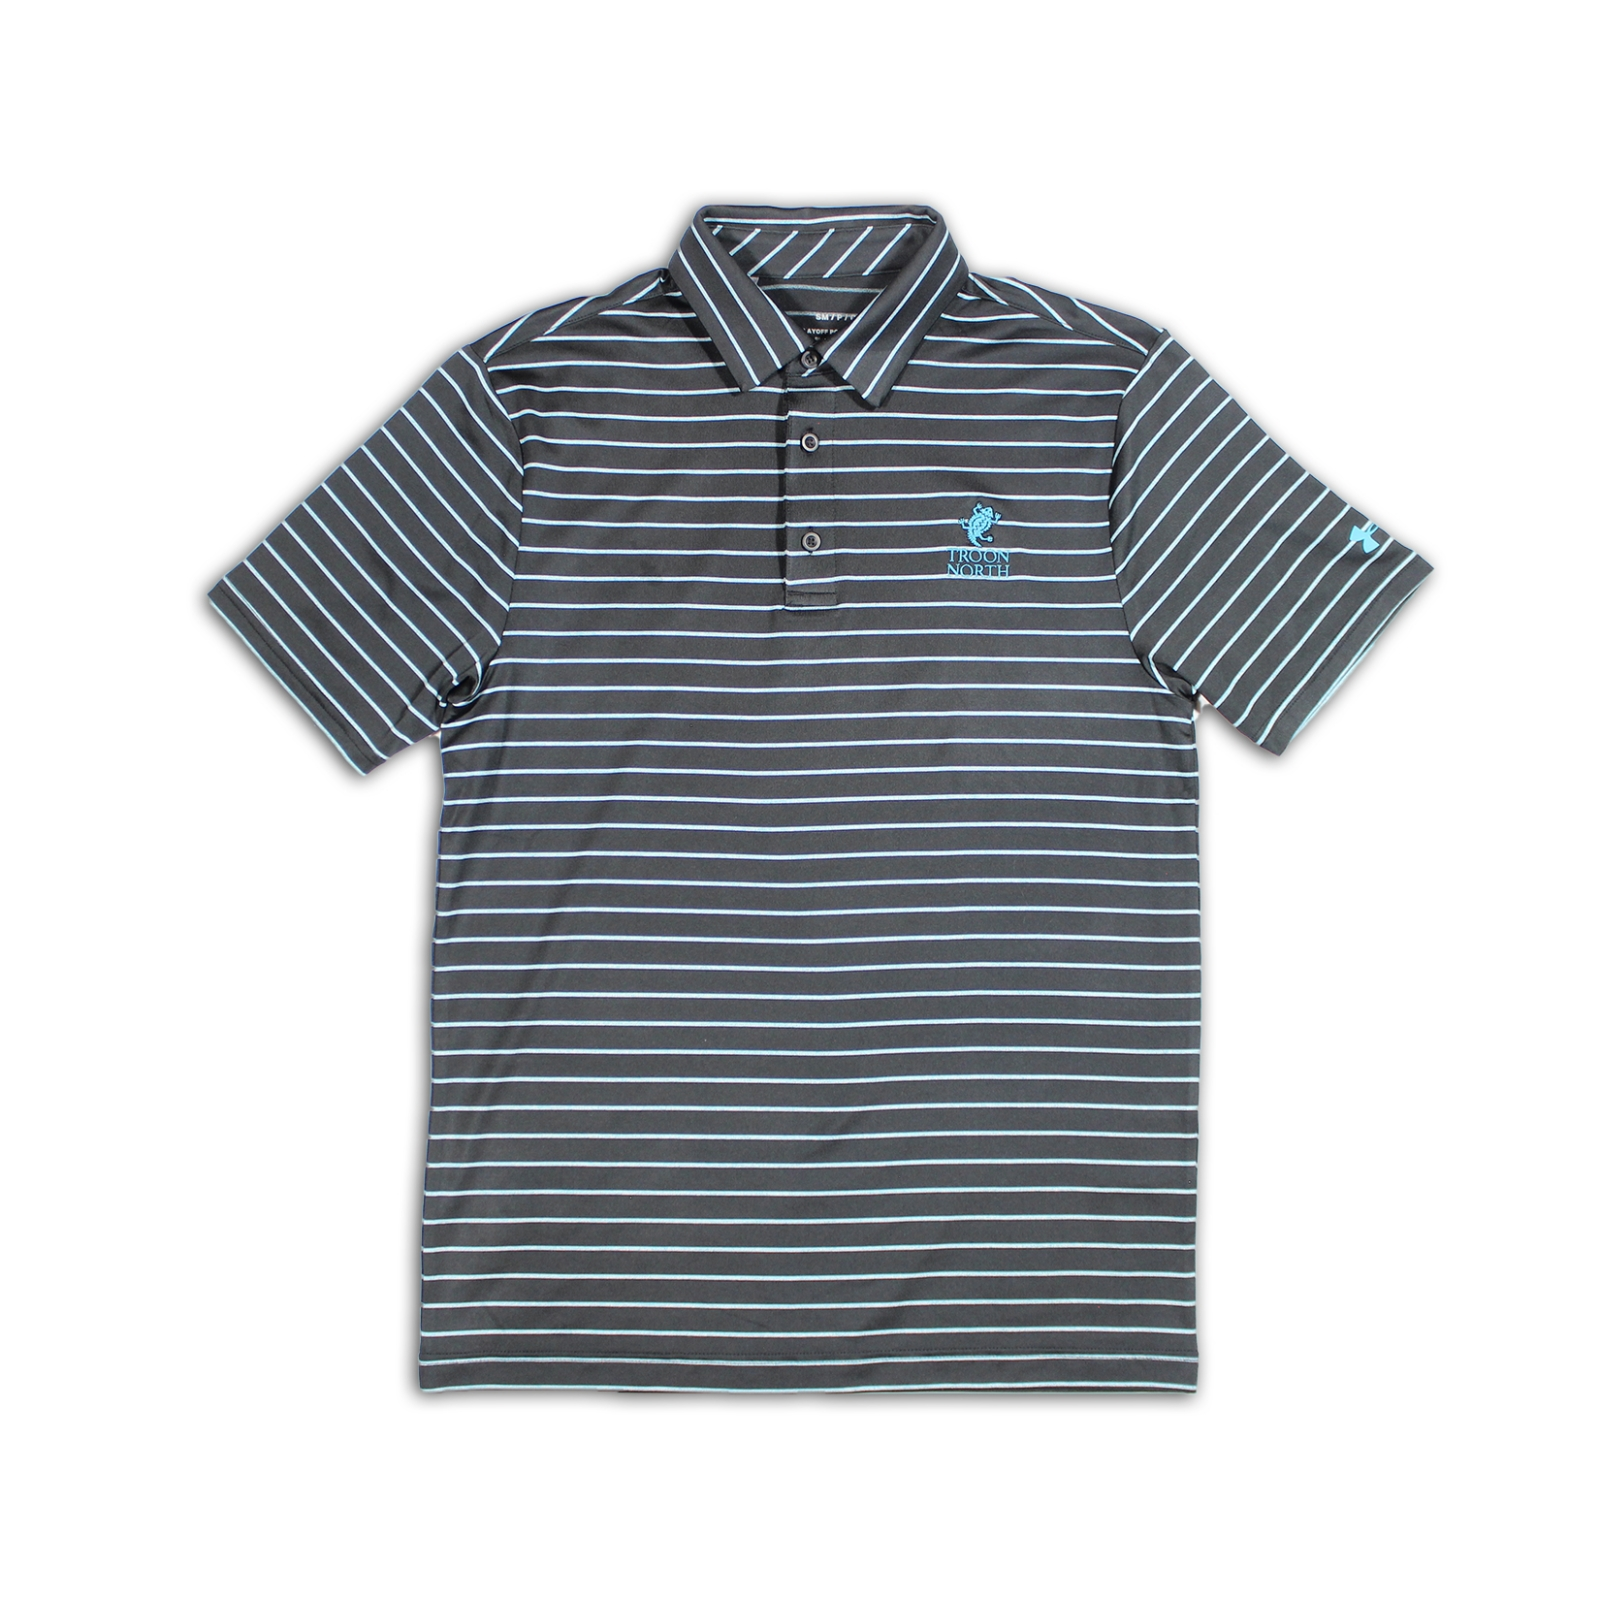 Under Armour Tour Stripe Black & Escape Blue Polo